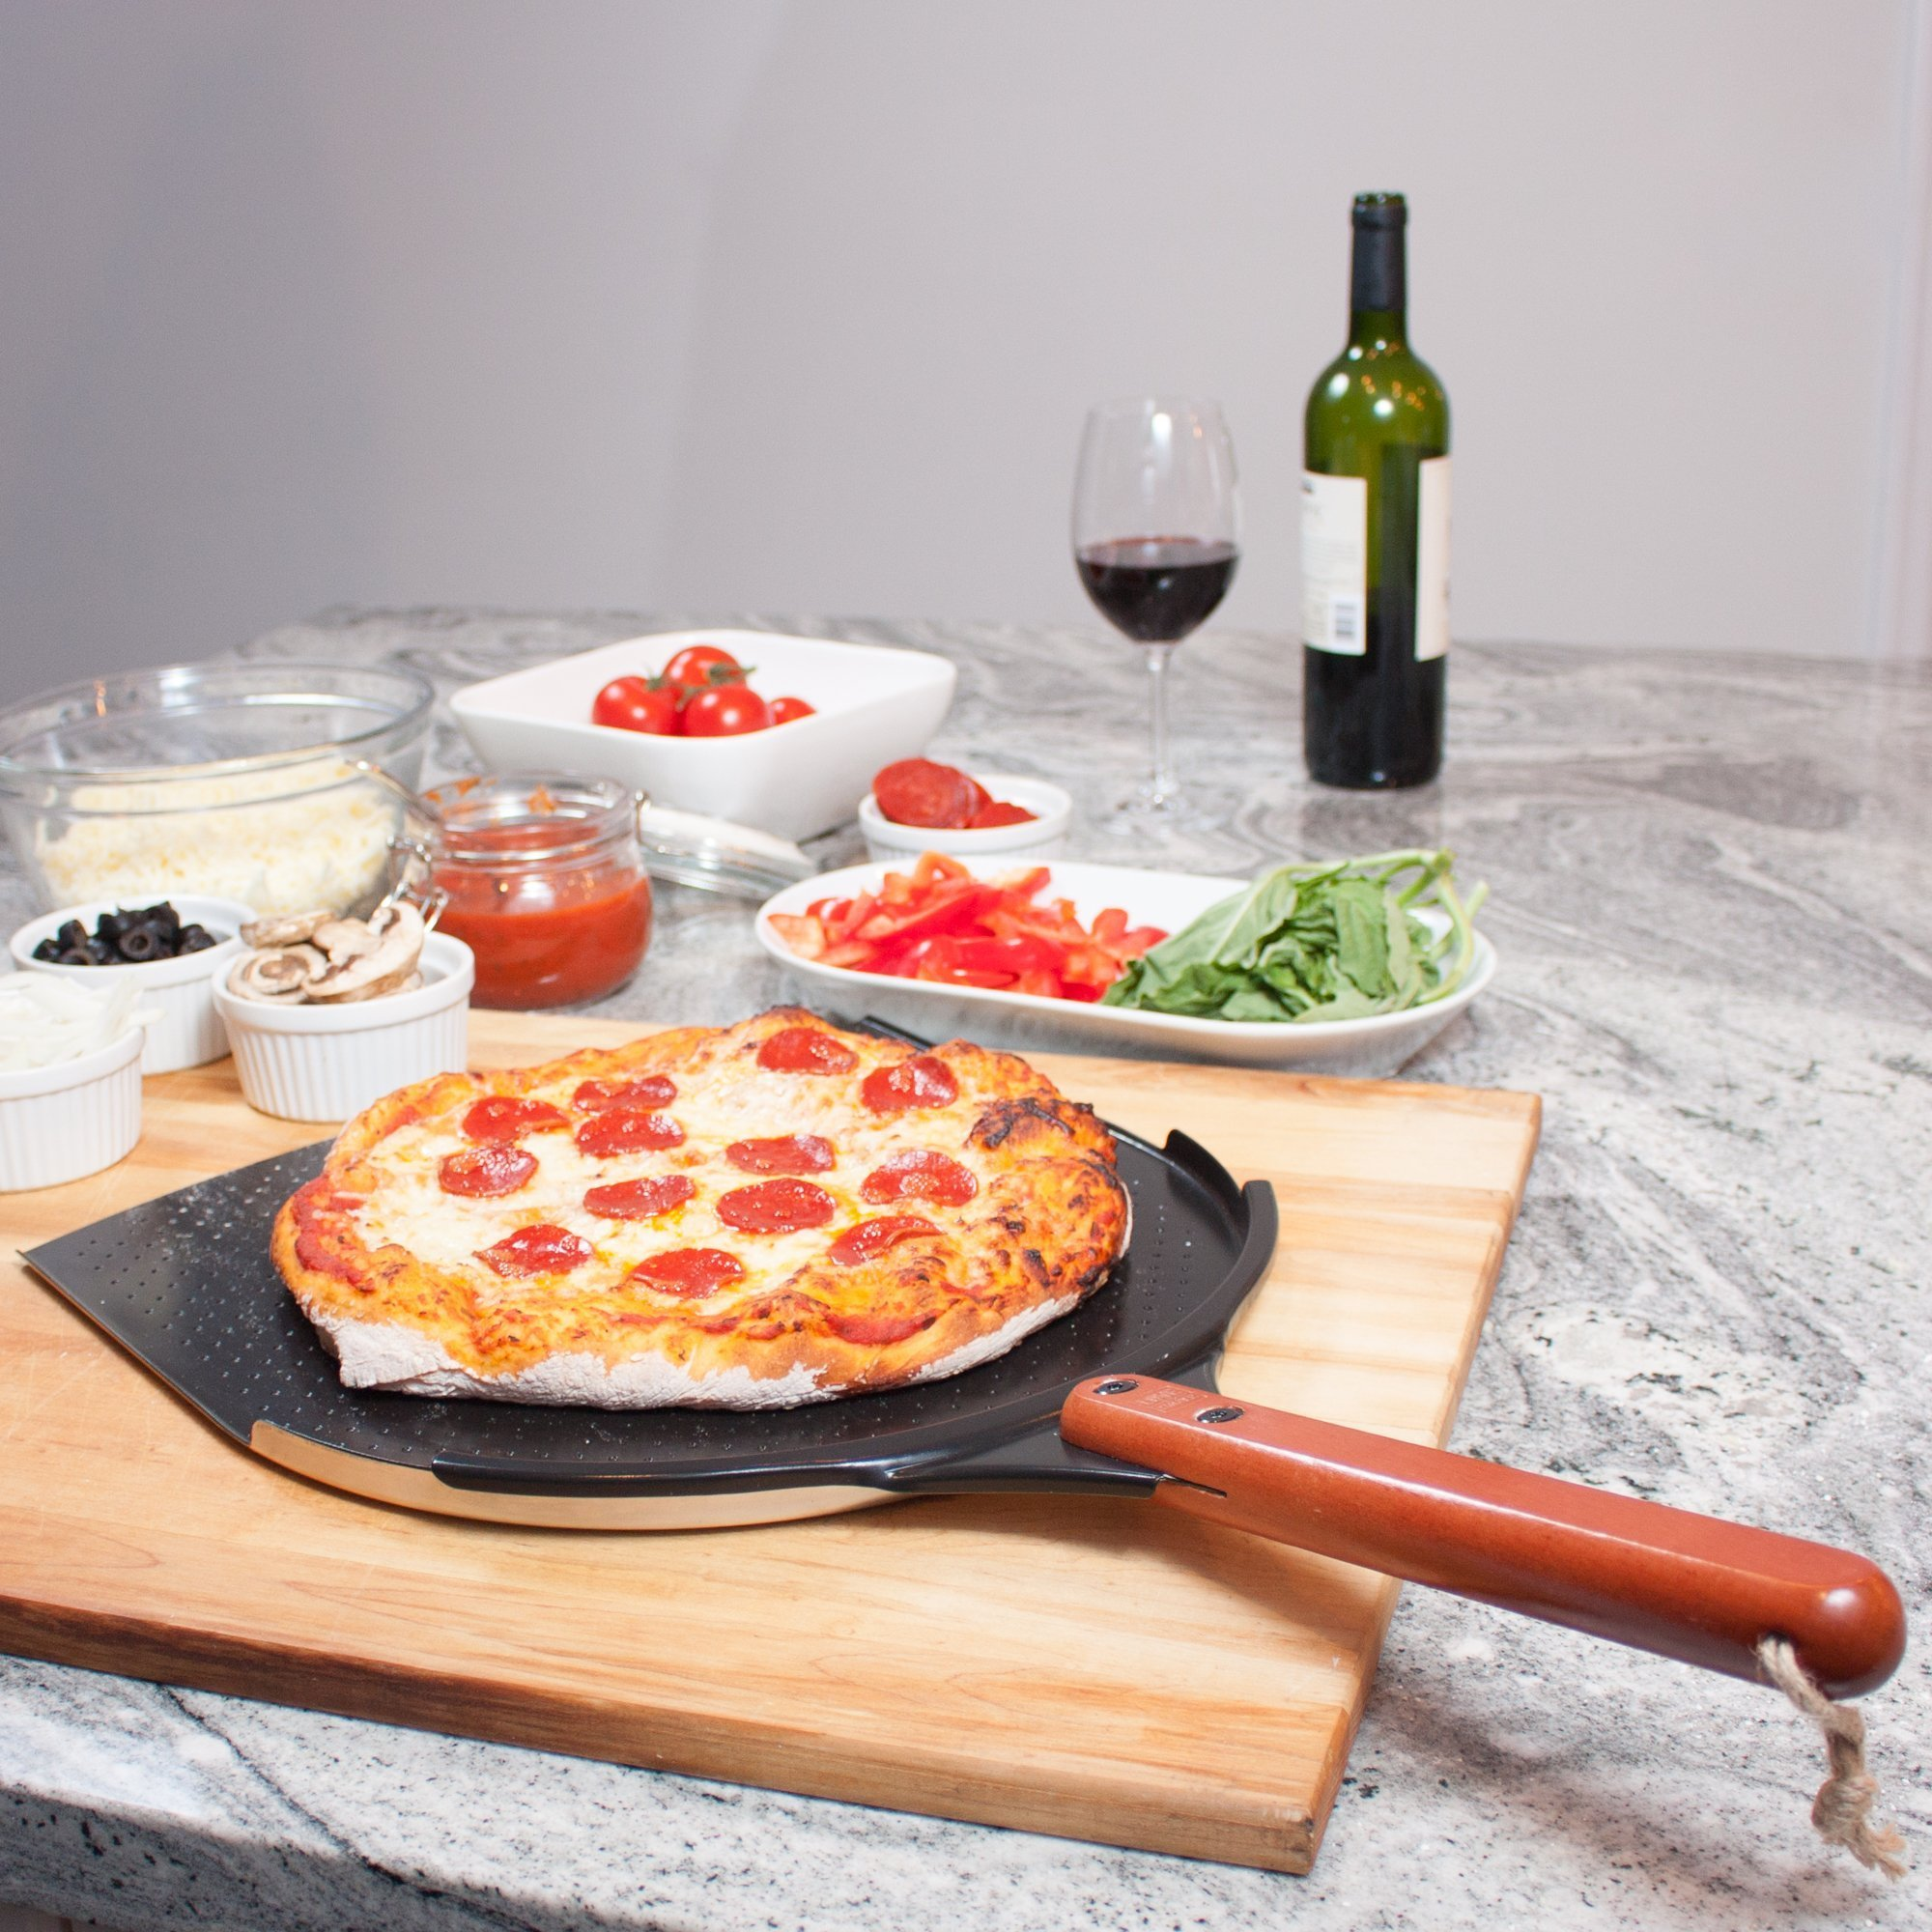 The Ultimate Aluminum Pizza Peel. 14'' Paddle with a Smooth Ceramic Coating, 10'' Wood Handle. Large & Lightweight, Use this Metal Spatula for Baking Pizzas and Breads on Oven & Grill by Love This Kitchen (Image #9)